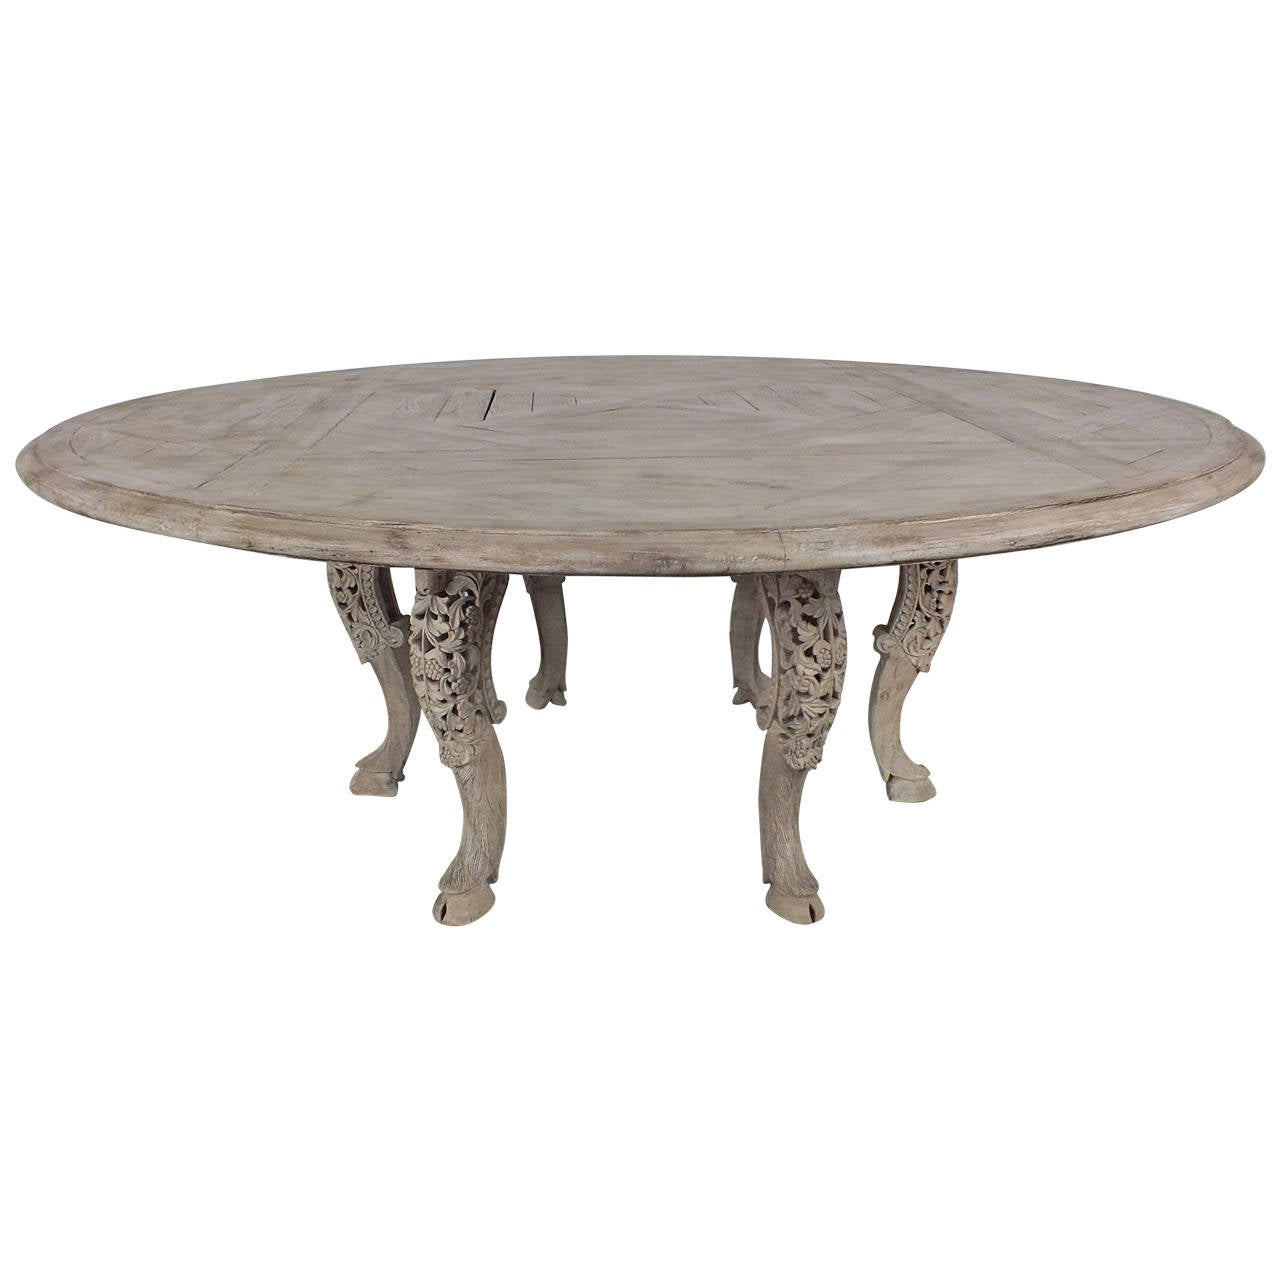 Beautiful 1960s parquet top round dining table at 1stdibs for Beautiful round dining tables